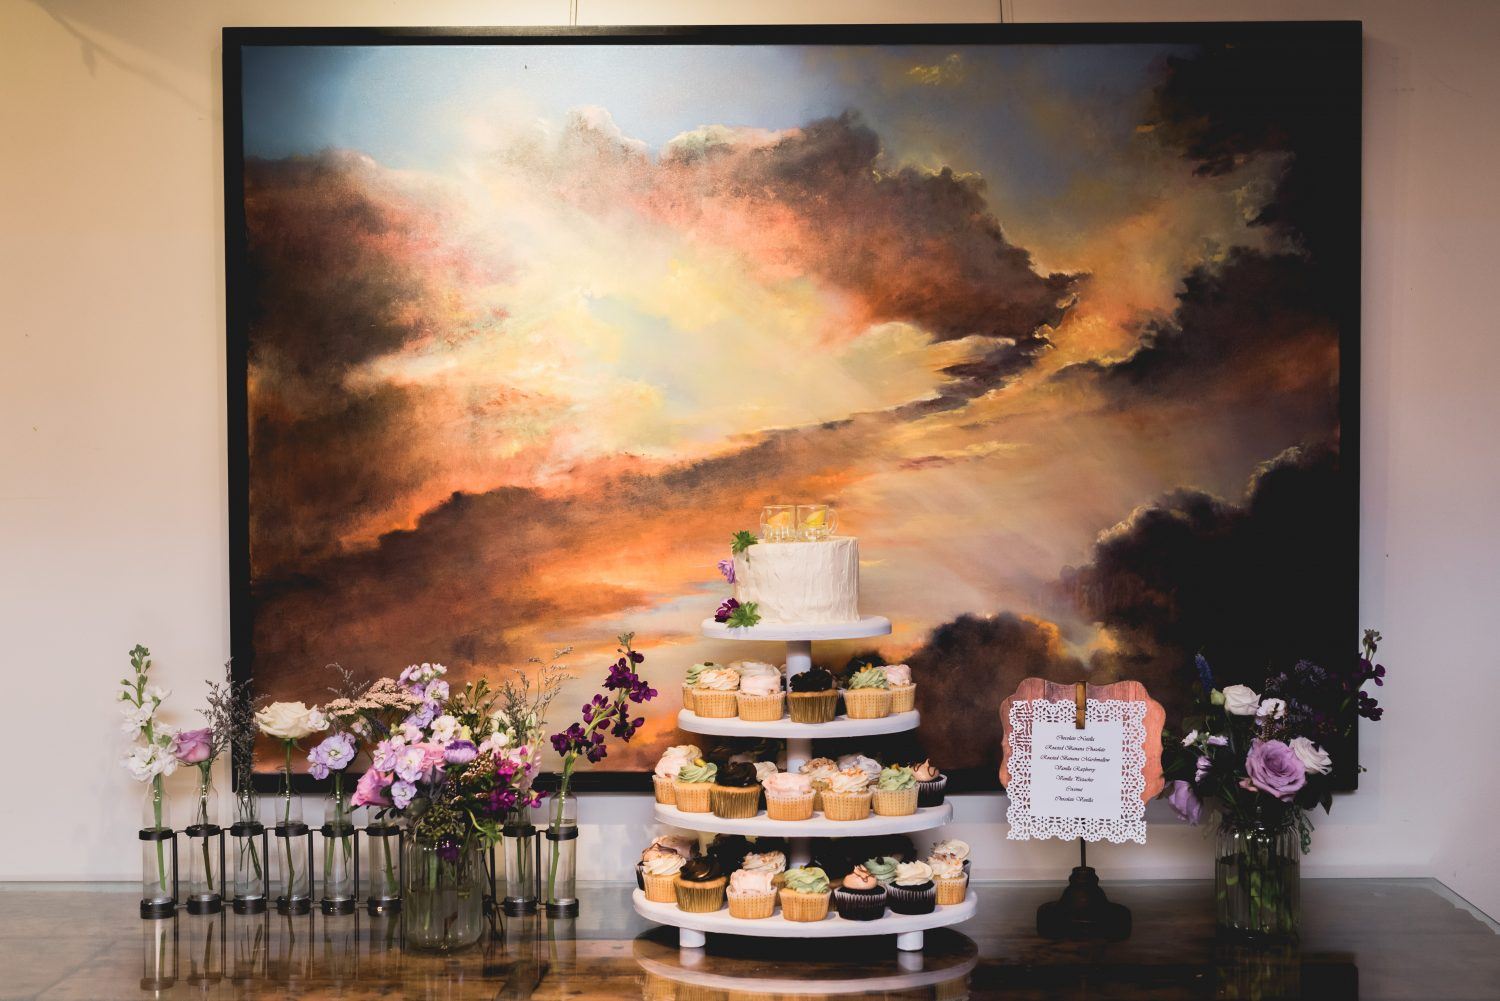 Cupcakes in front of beautiful painting at Alton Mill wedding